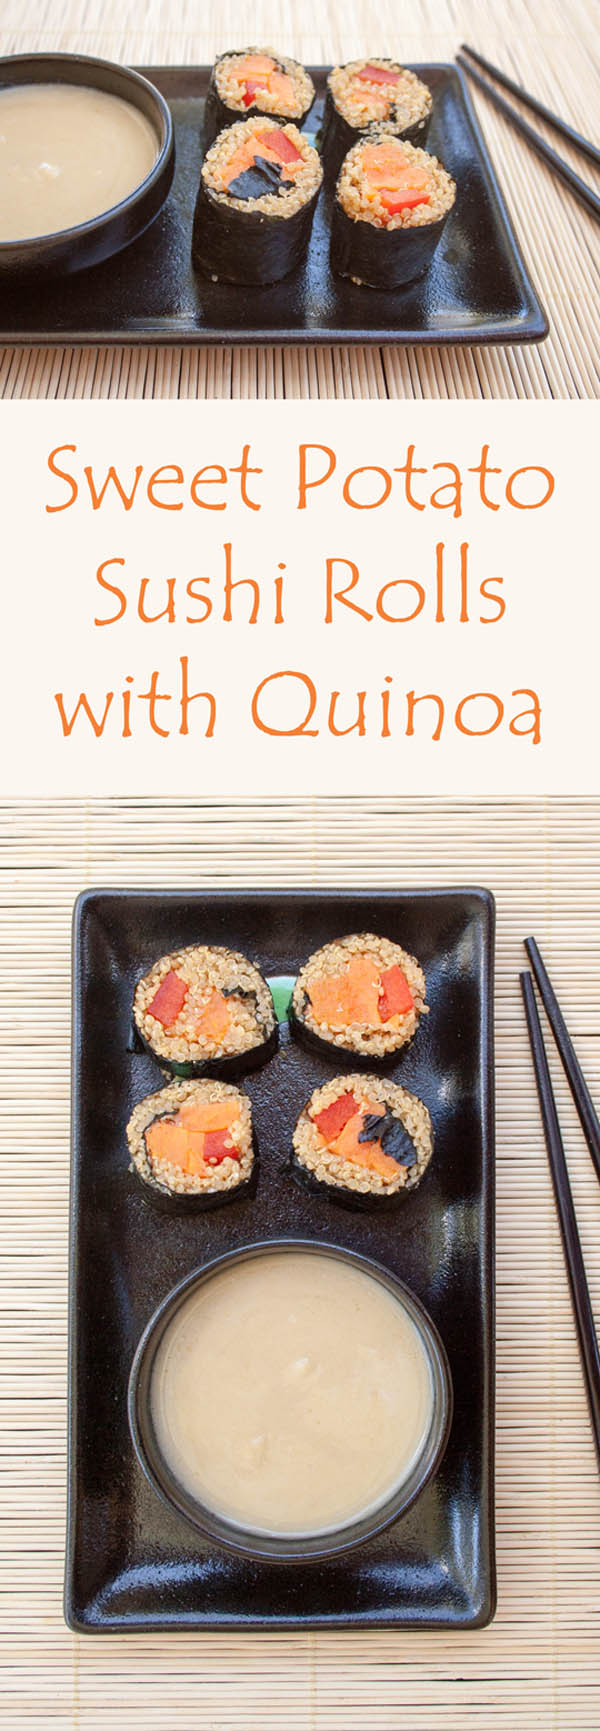 Sweet Potato Sushi Rolls collage photo with text.